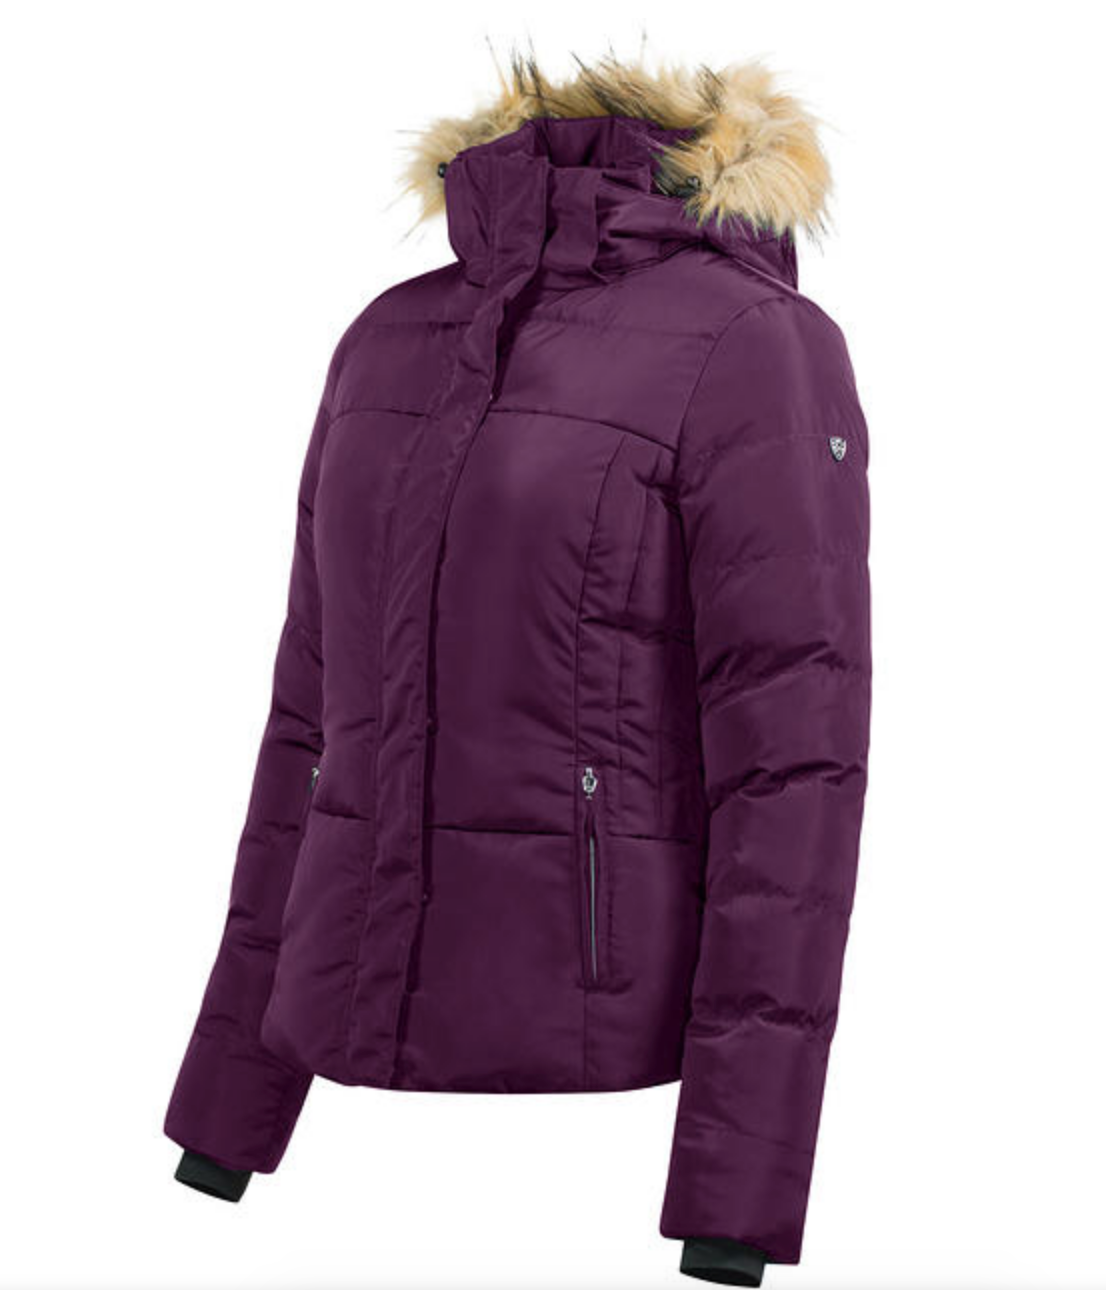 The Horze Camilla padded horseback riding jacket for the winter is stylish and comfortable for all your riding needs.